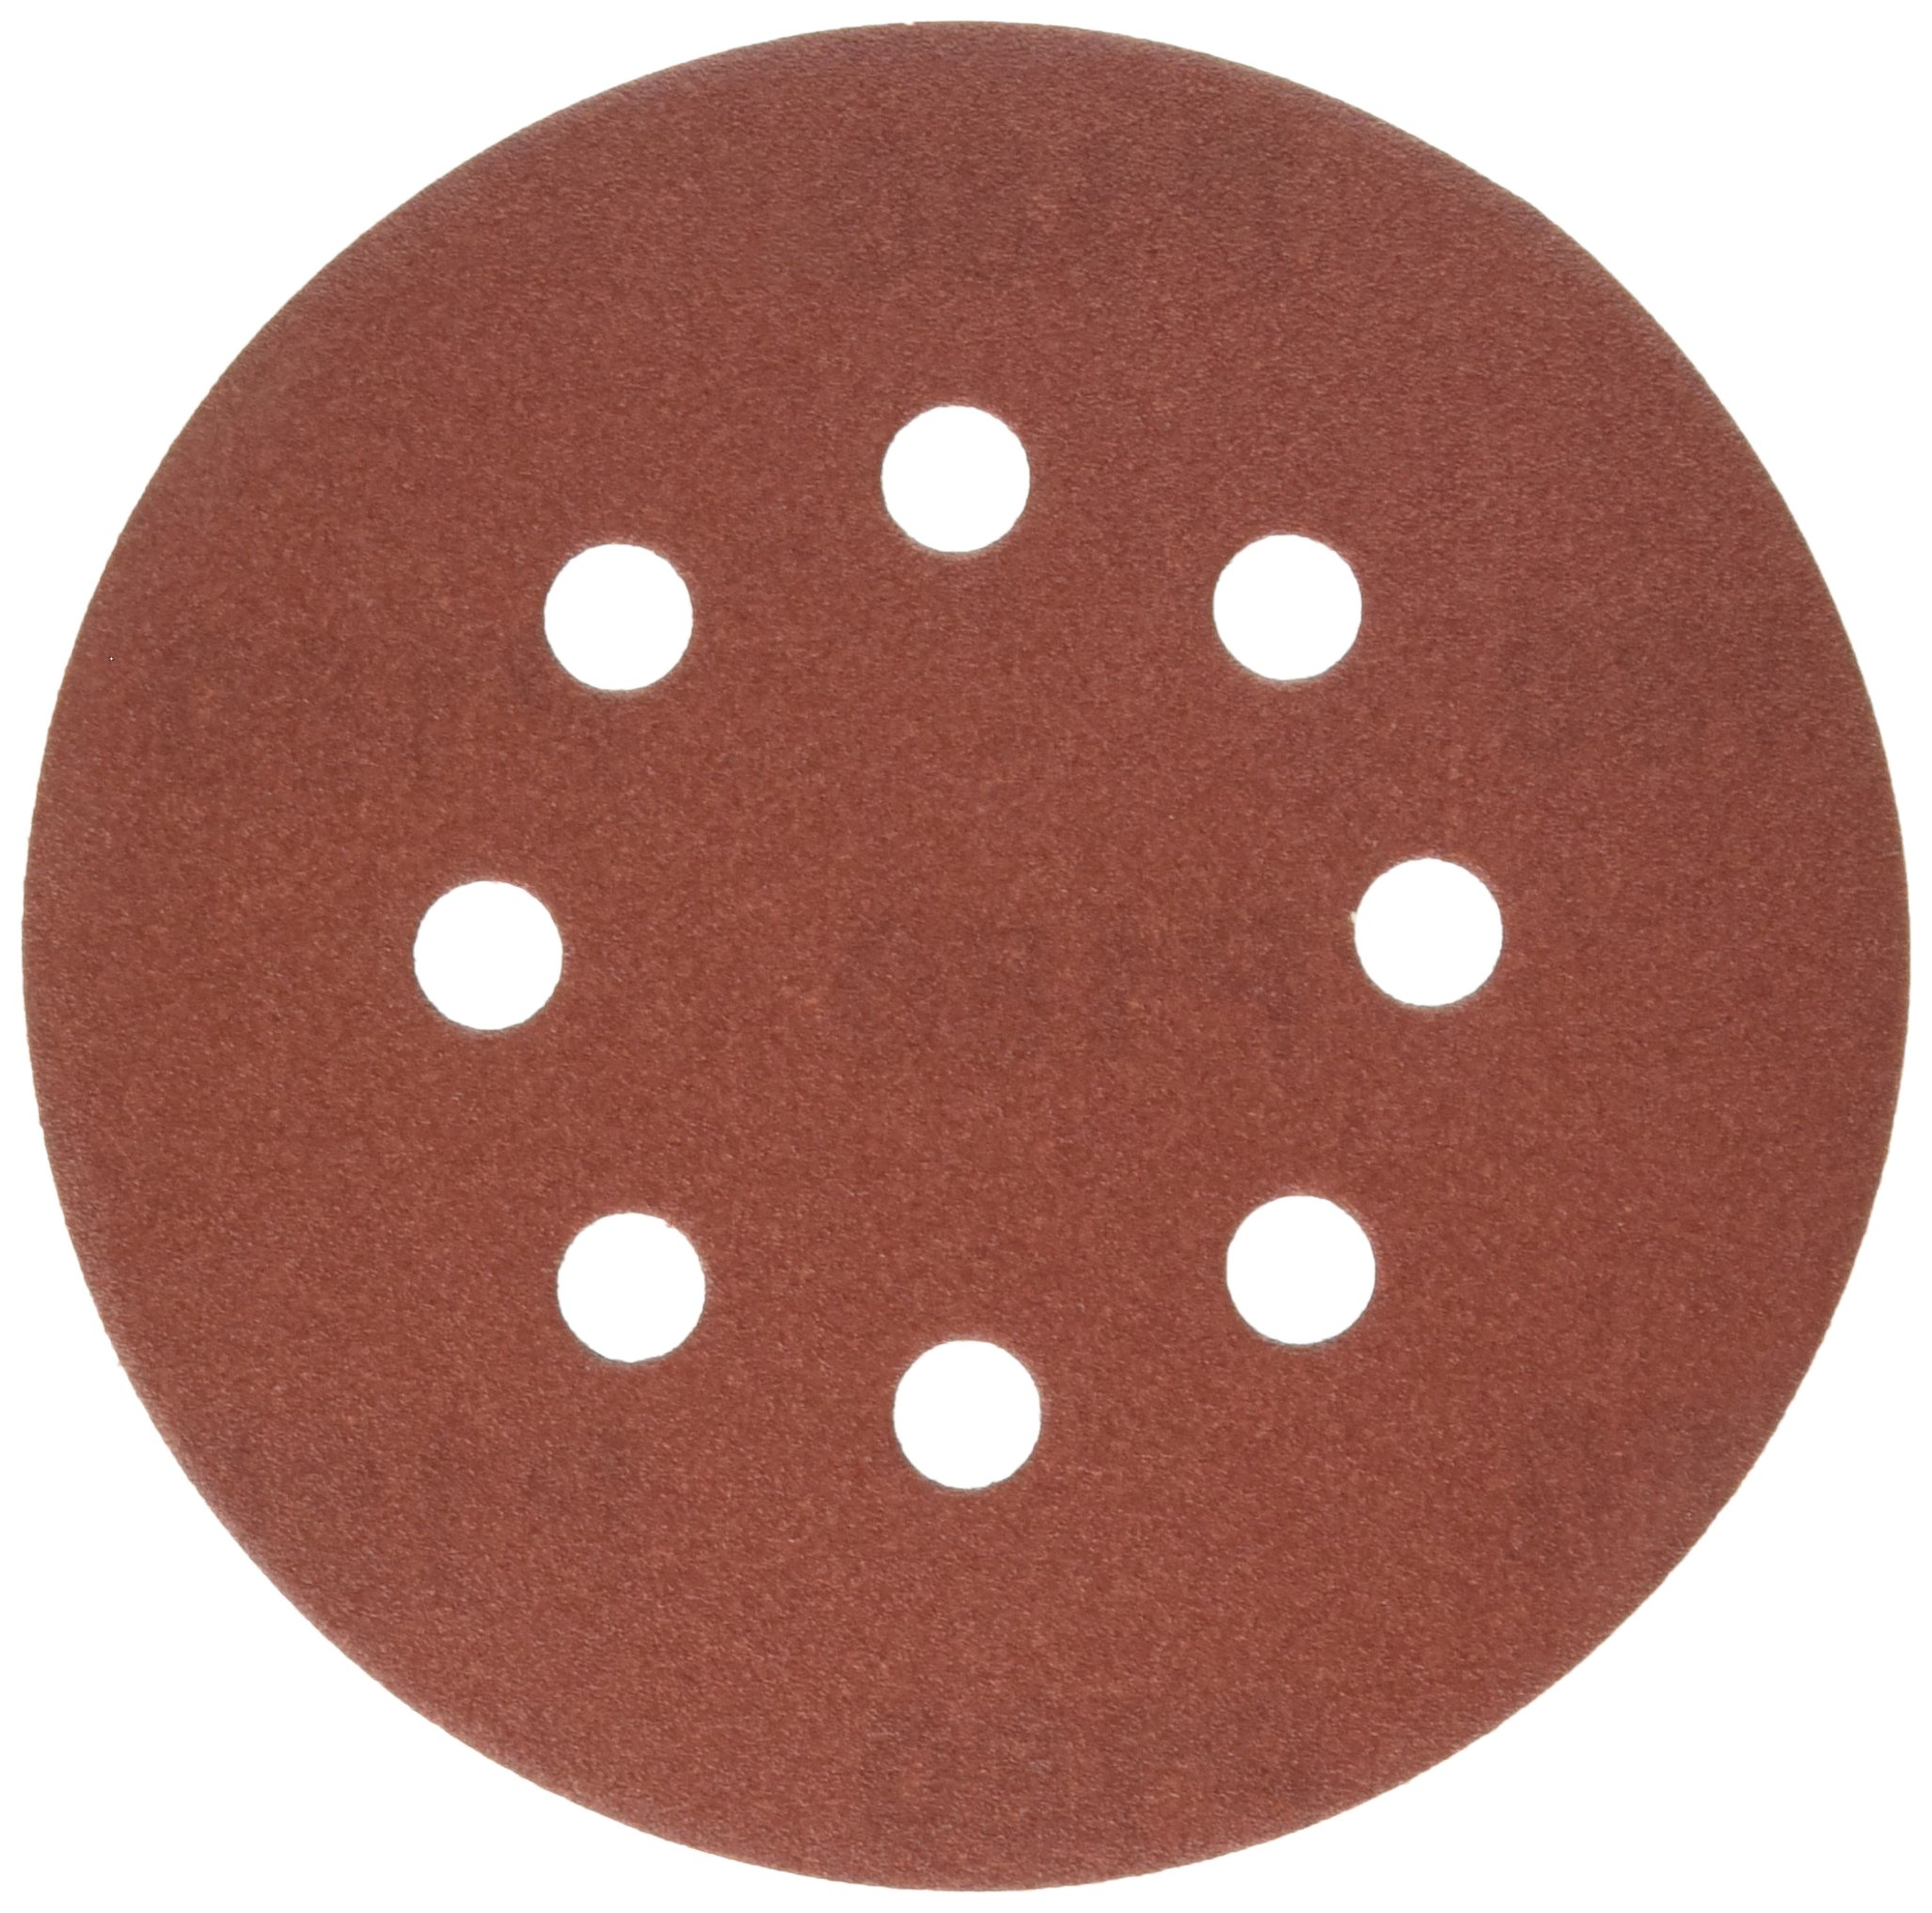 PORTER-CABLE 725801825 5-Inch 8 Hole 180G Disc (25-Pack)